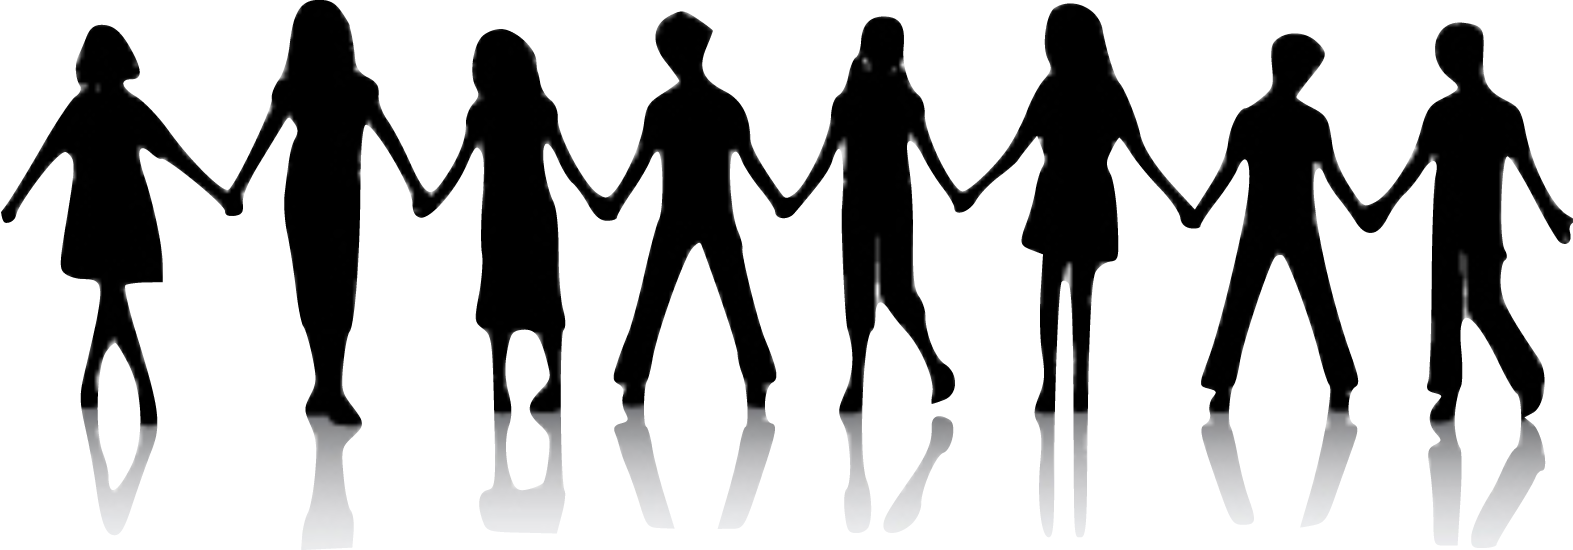 Friends clipart transparent background. Png images free download